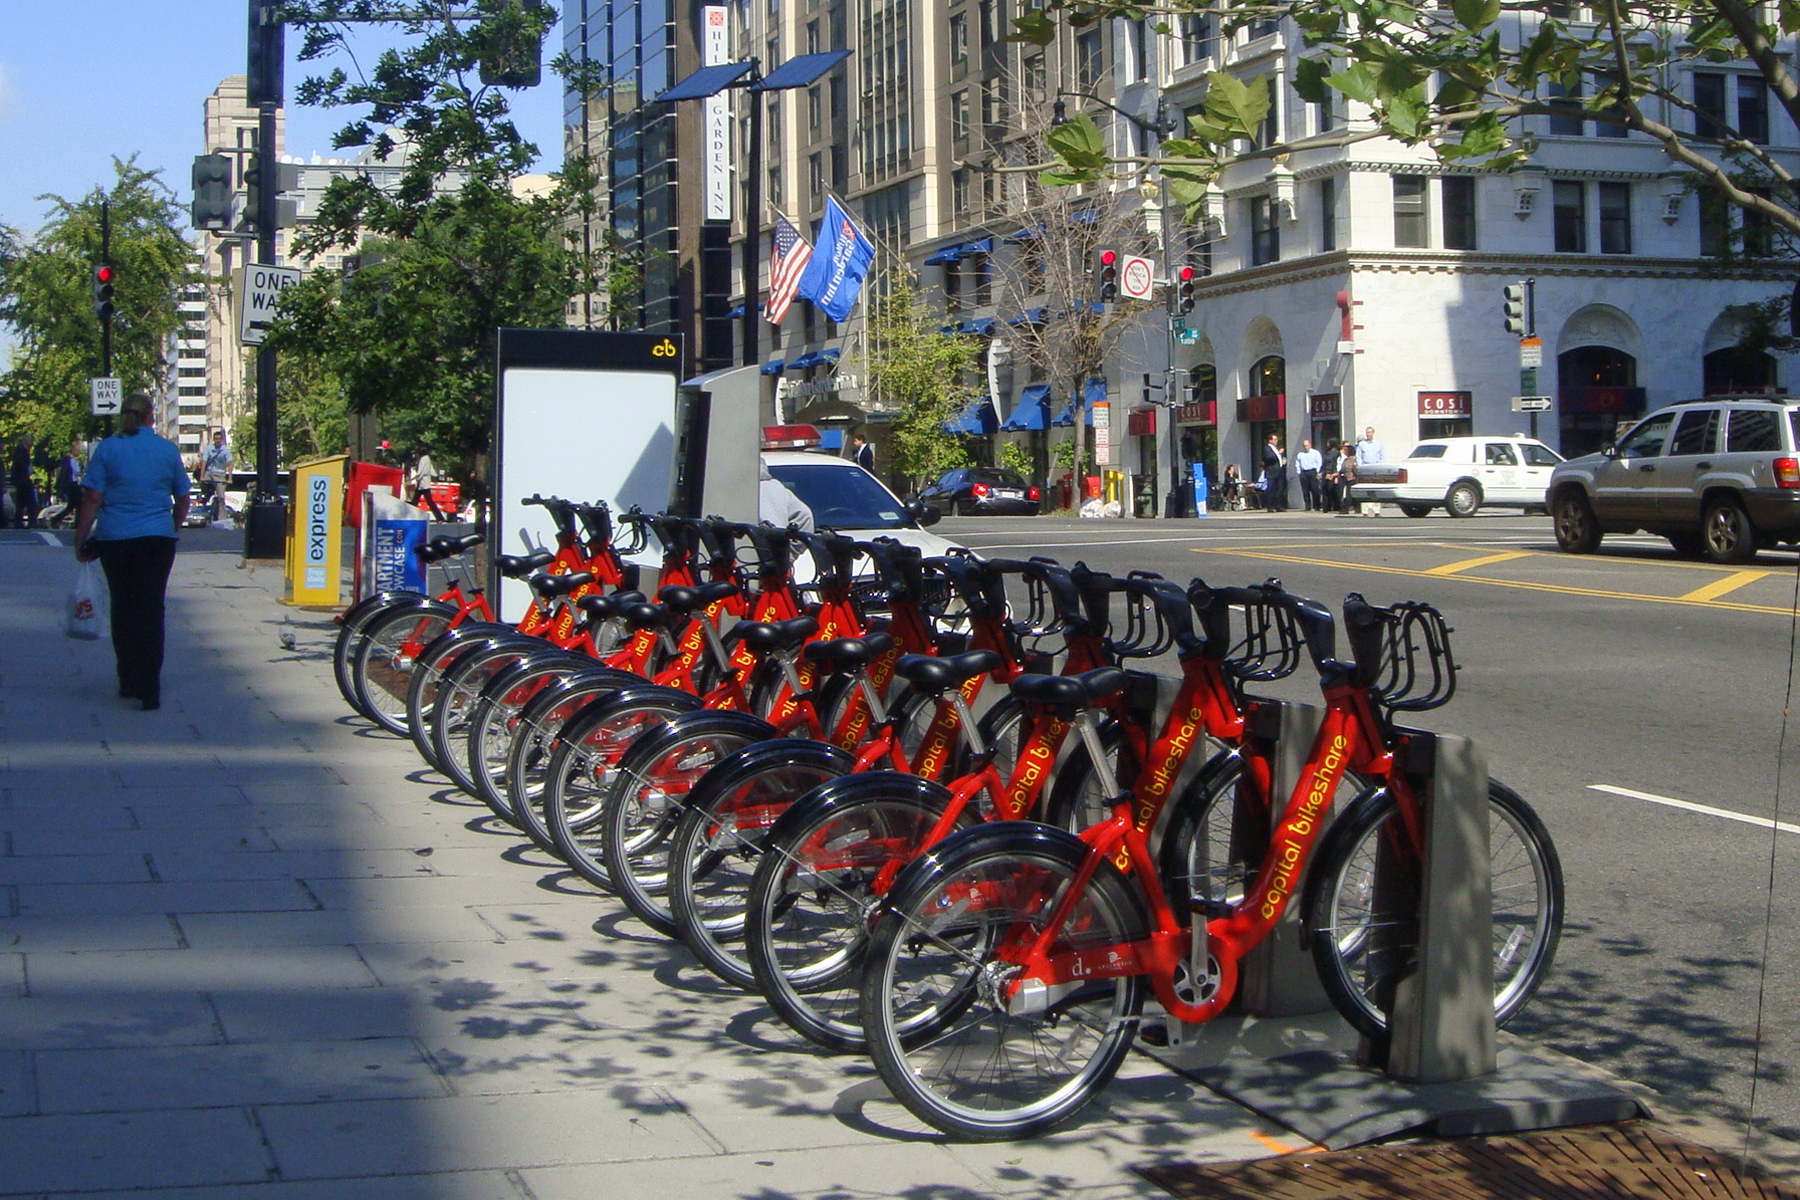 Capital_Bikeshare_DC_2010_10_545.jpg